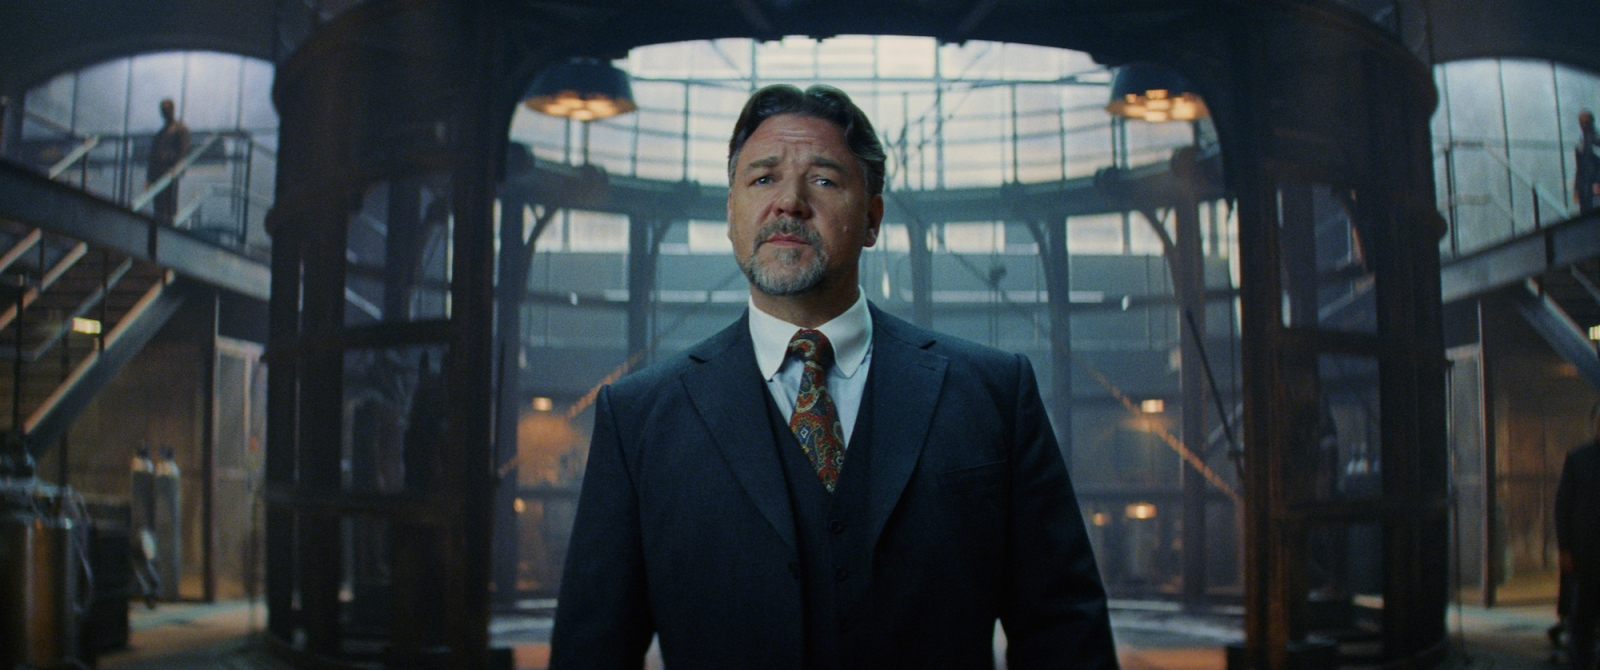 Russell Crowe in The Mummy